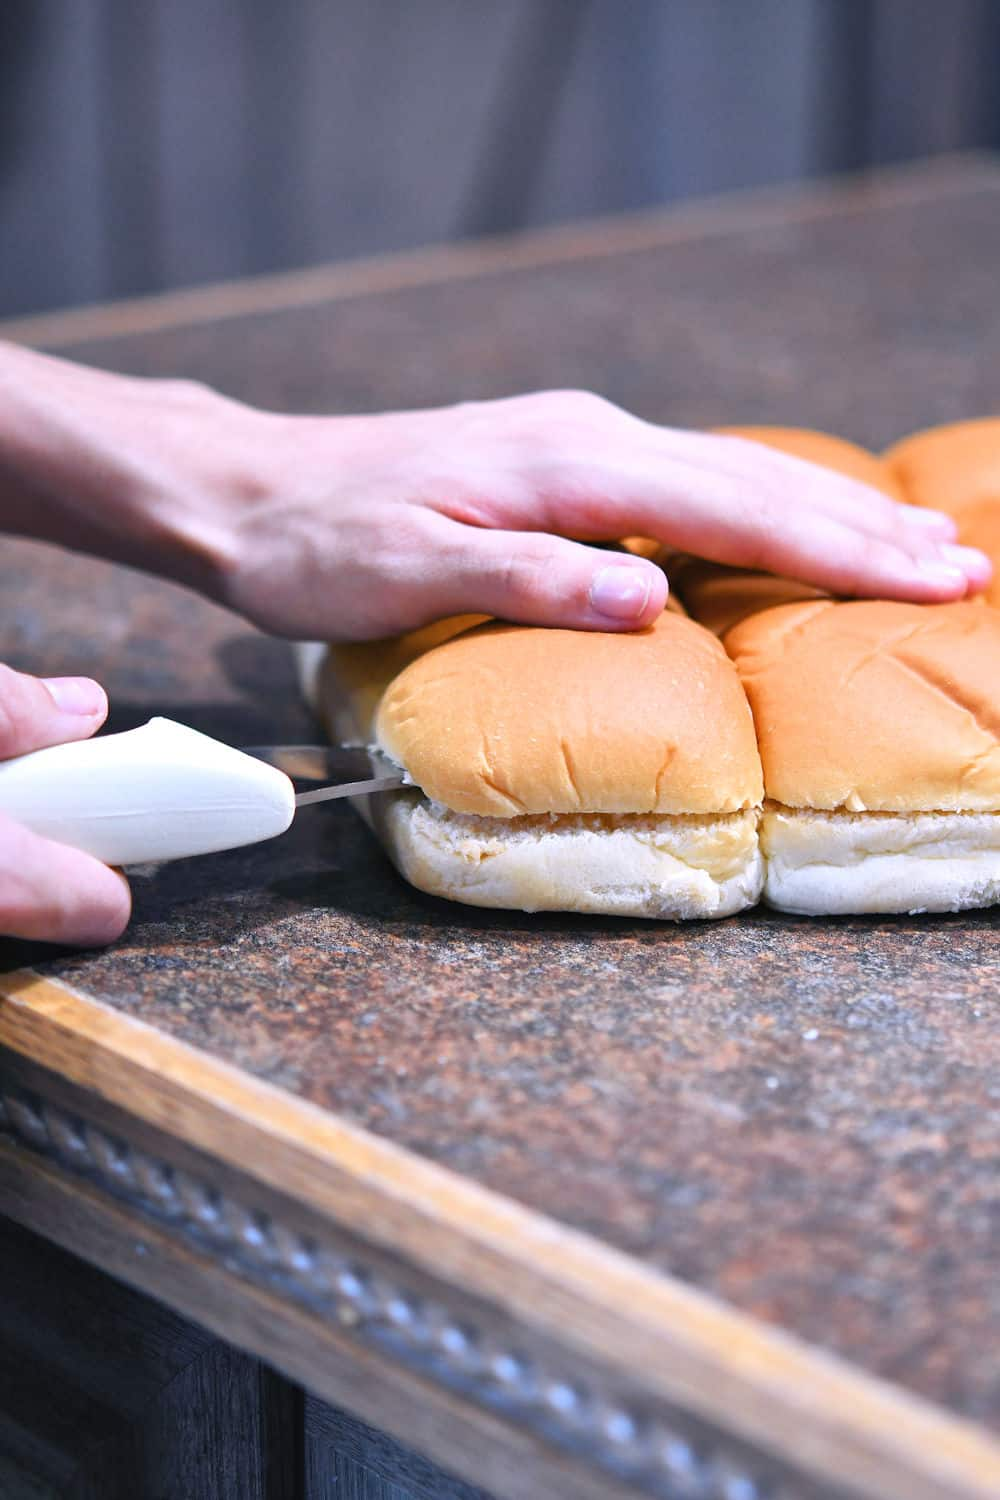 dinner rolls on a counter being cut through the horizontal center with a long serrated bread knife